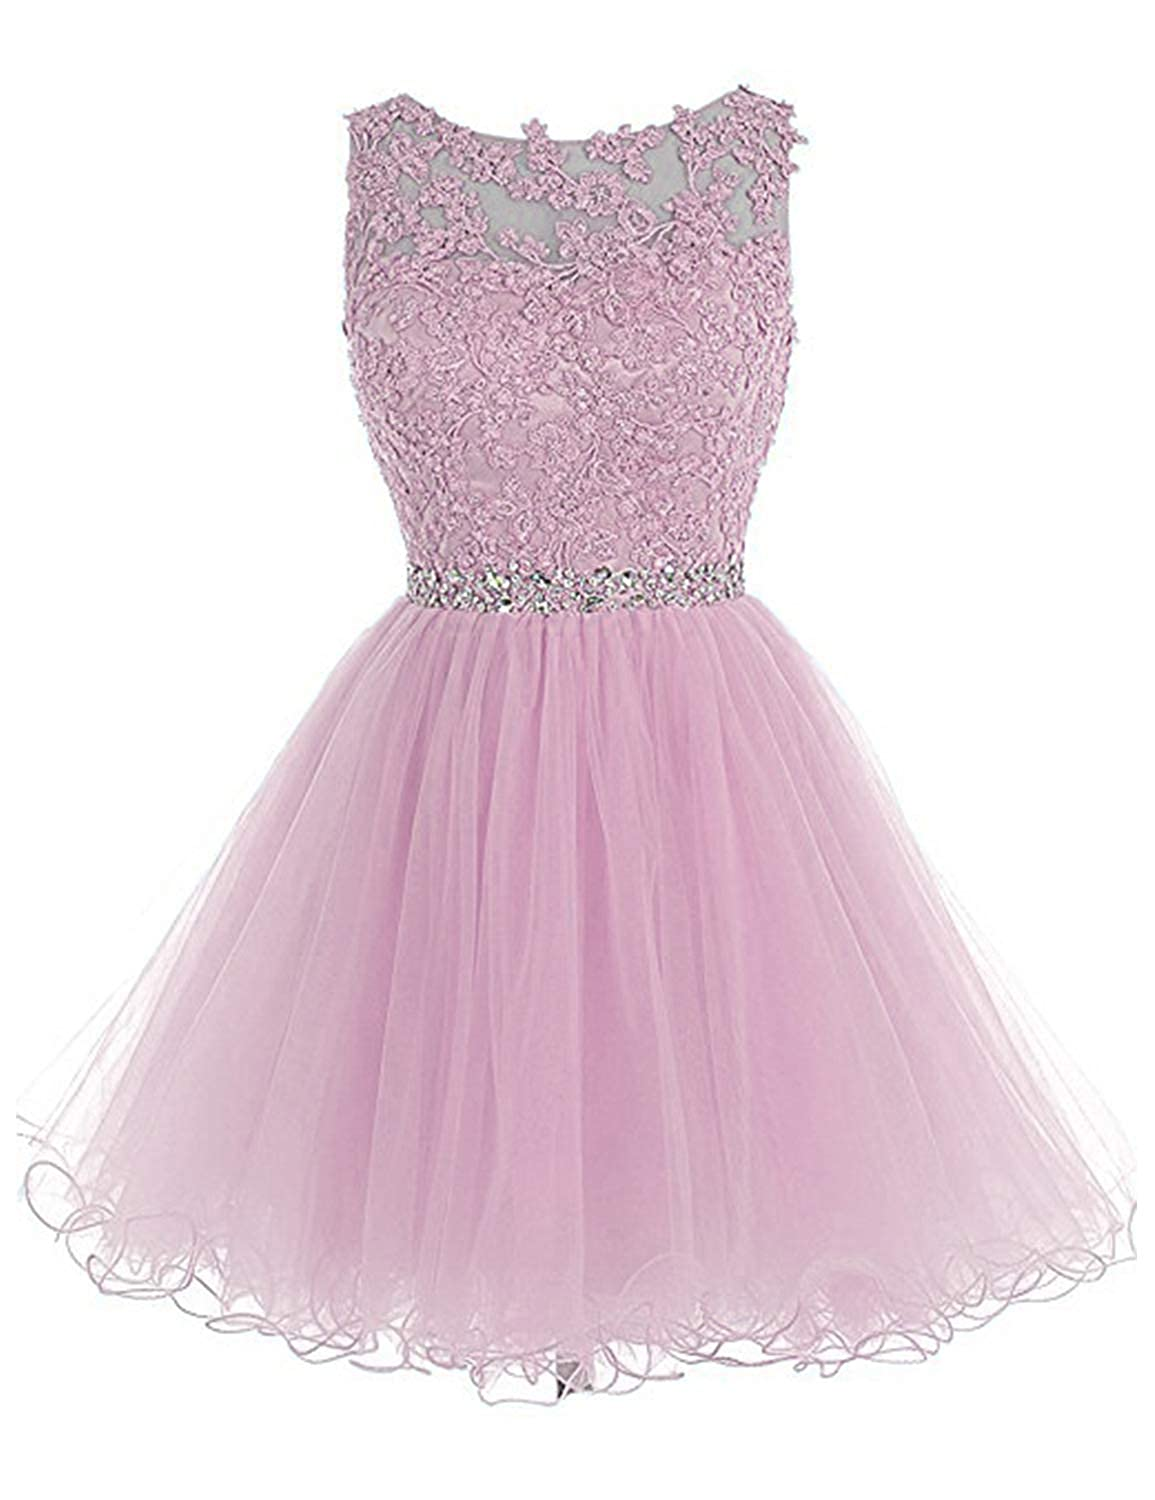 0 Pink 1 Vimans Women's Short Tulle Homecoming Dresses 2018 Knee Length Lace Prom Gowns Dress448